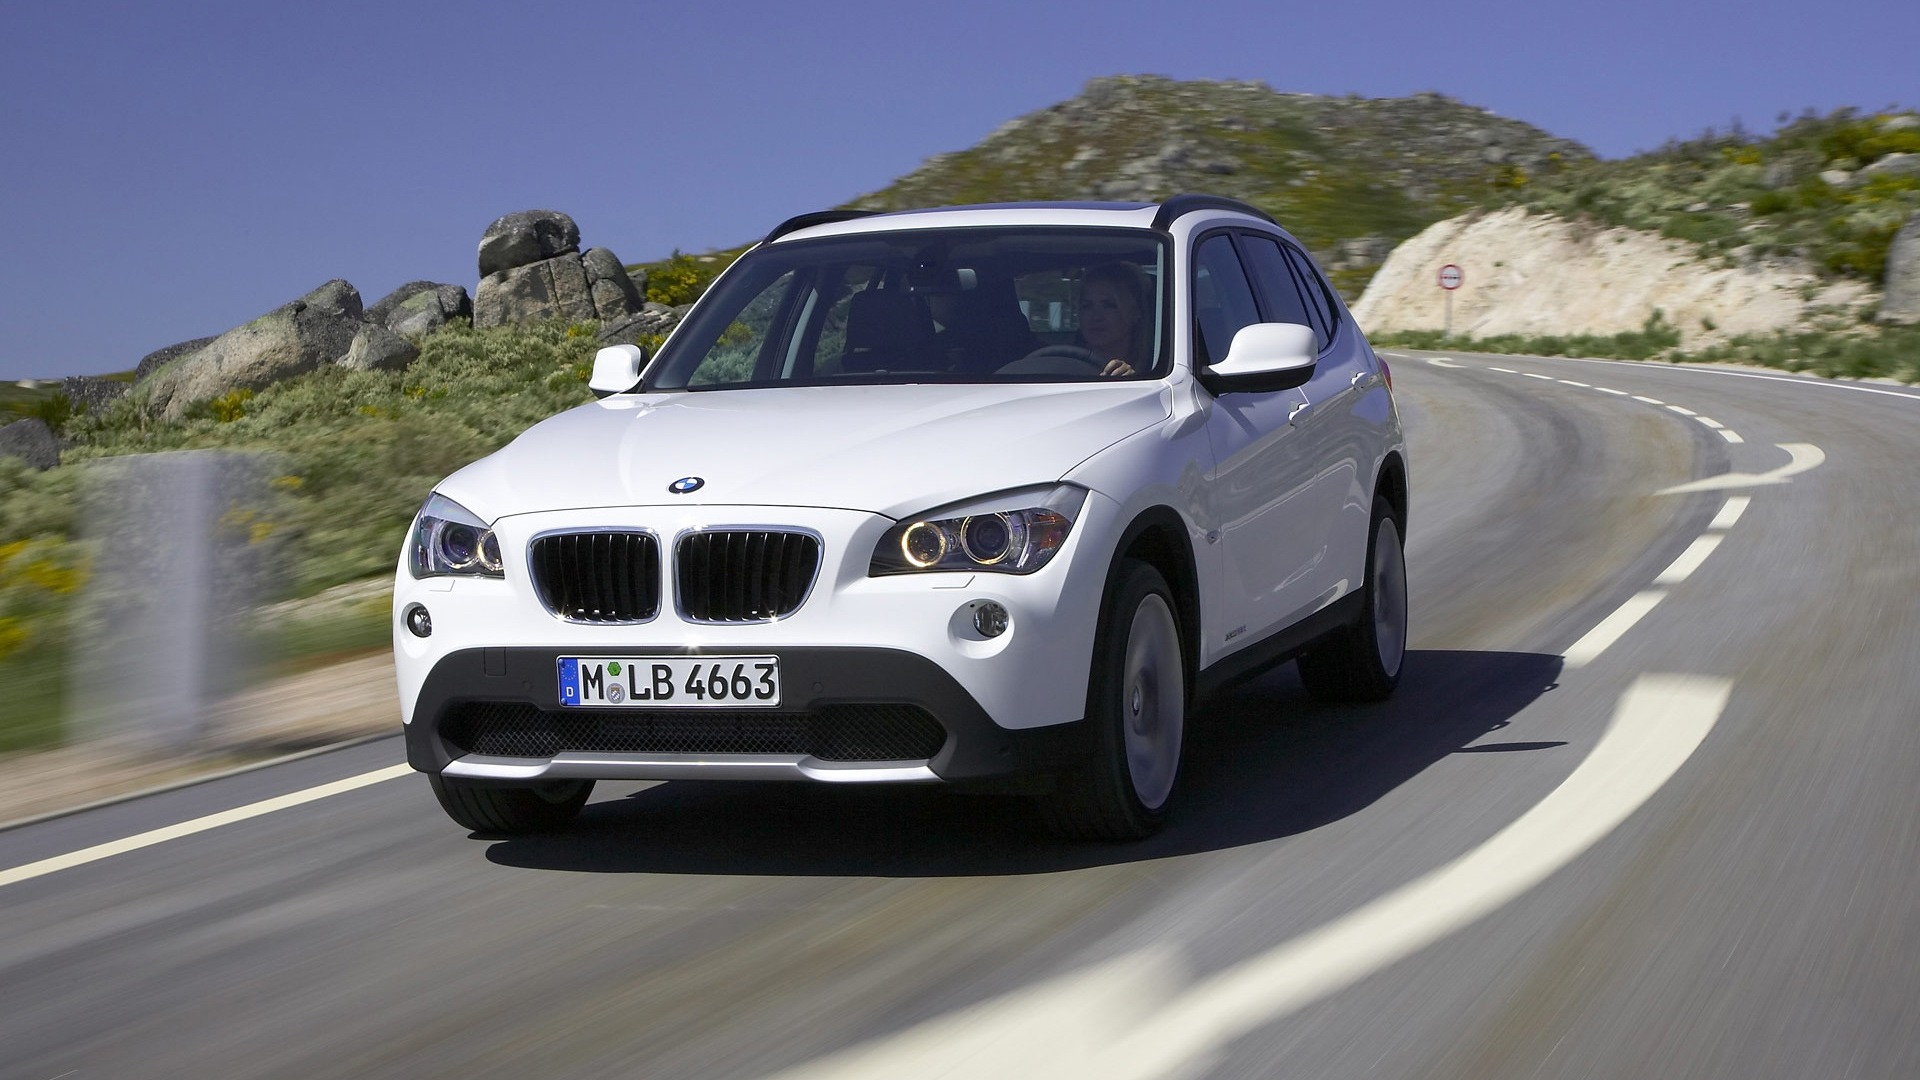 Bmw X1 Wallpaper Bmw Cars Wallpapers In Jpg Format For Free Download